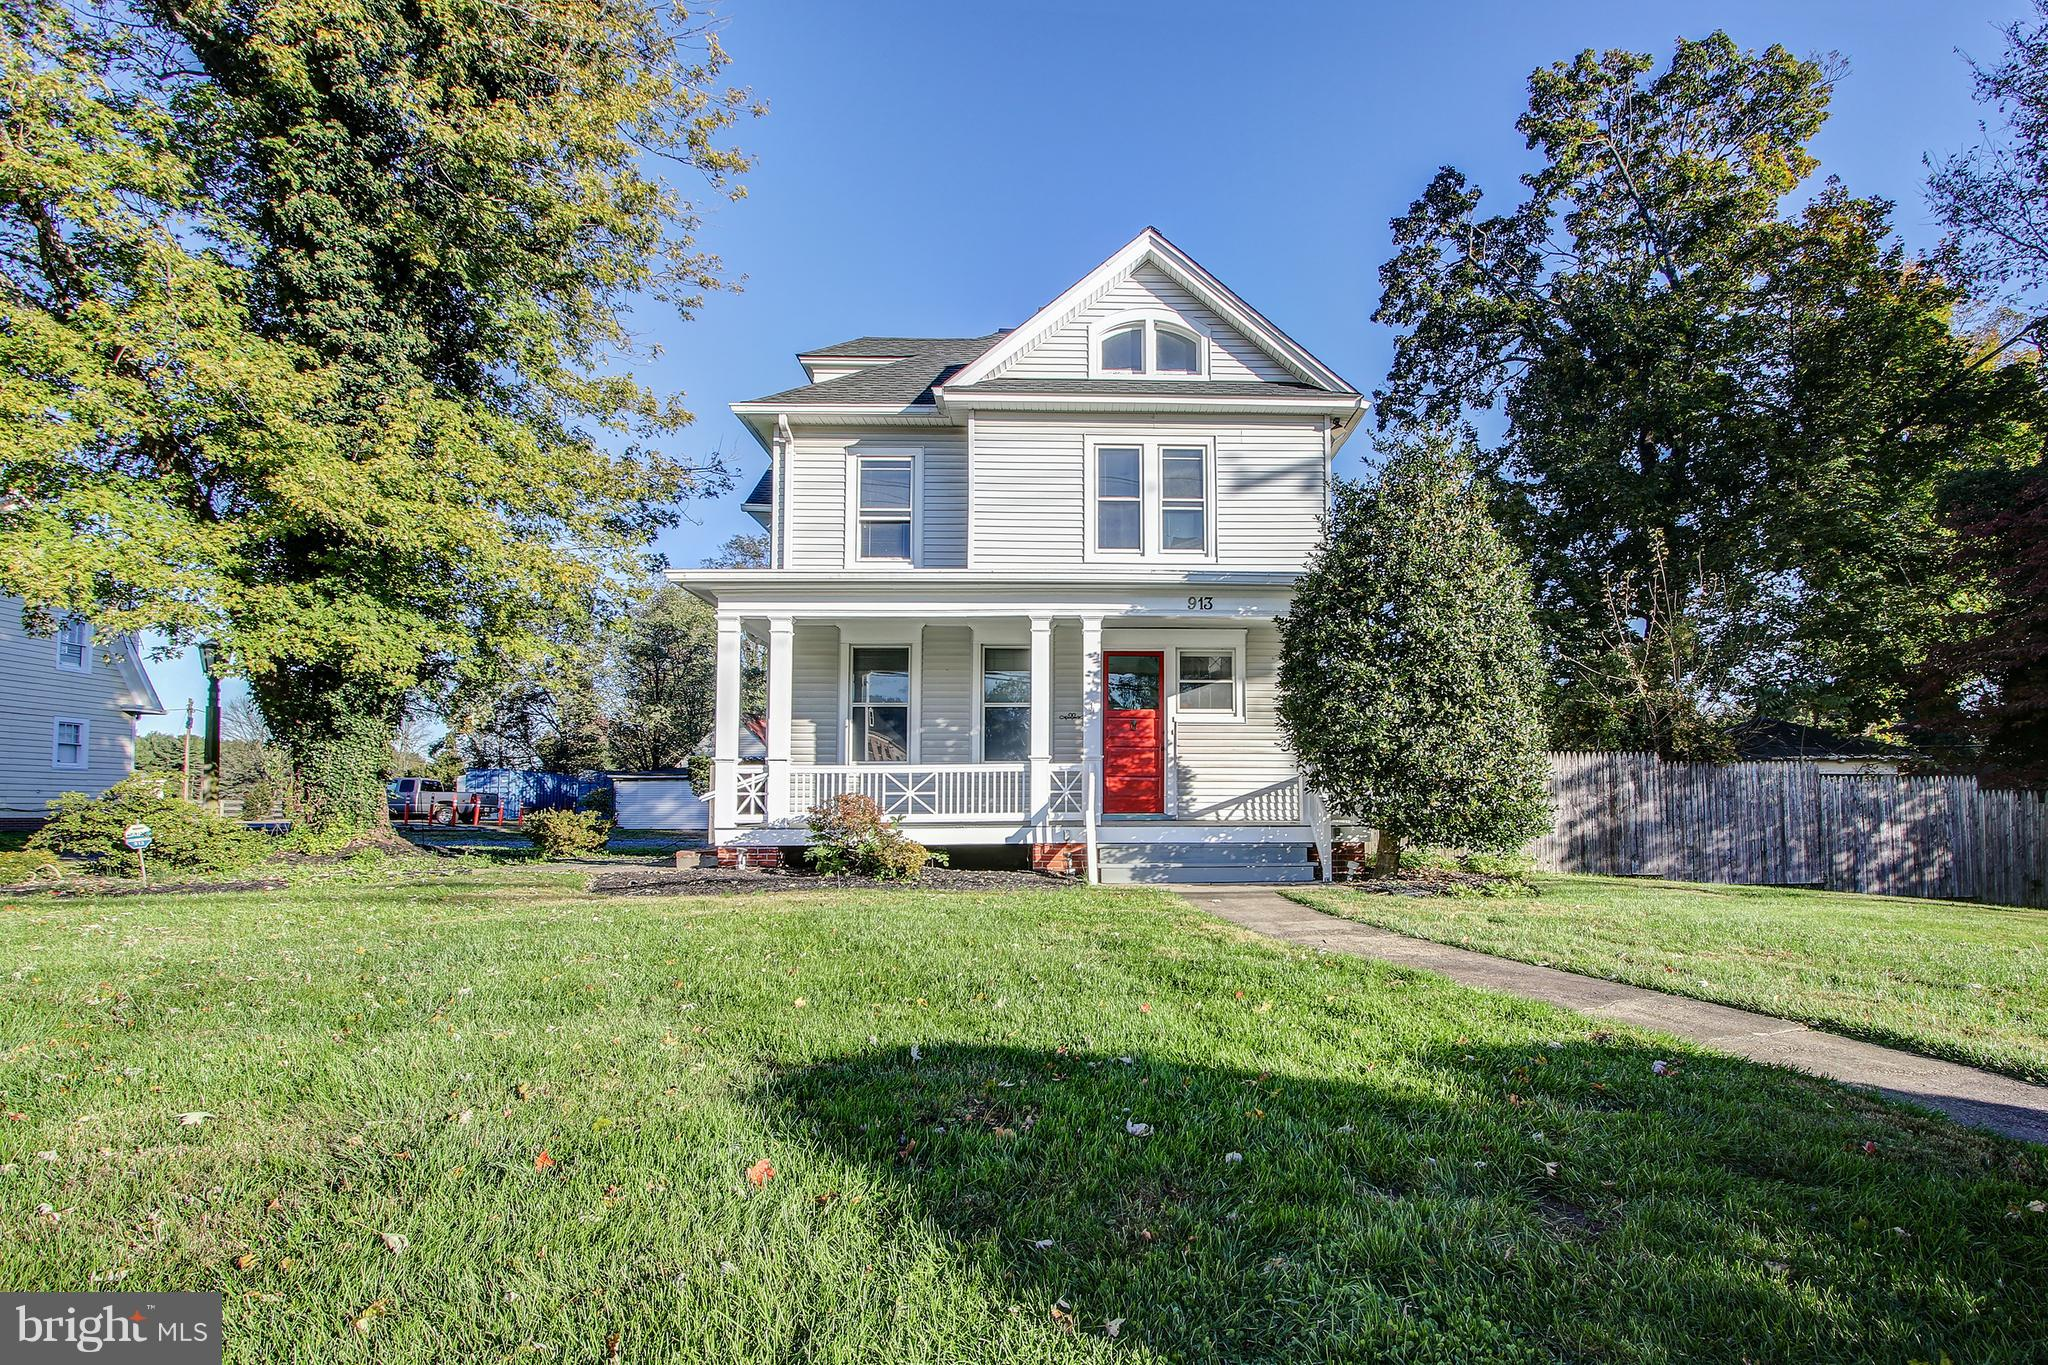 913 OLNEY SANDY SPRING ROAD, SANDY SPRING, MD 20860